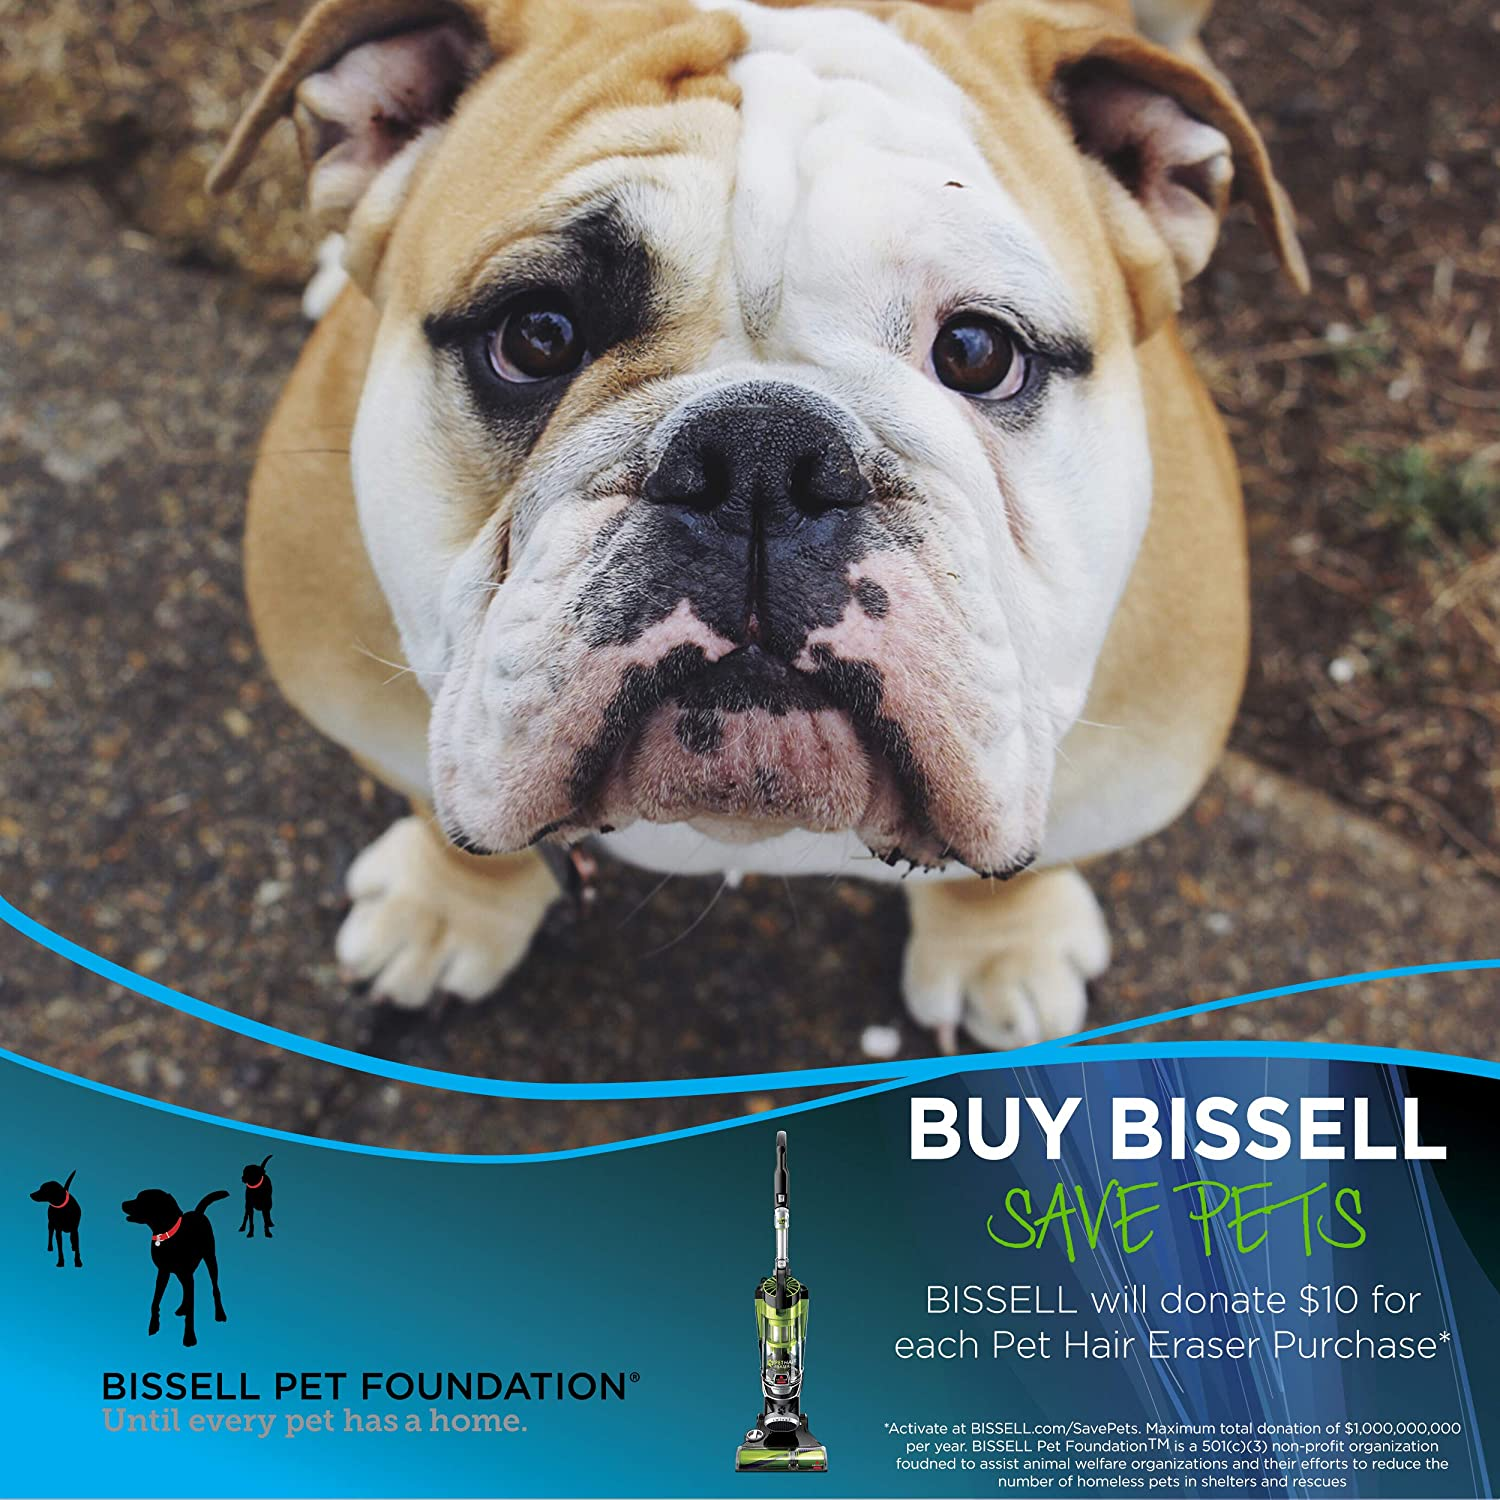 Bissell Pet Hair Eraser 1650A Upright Vacuum with Tangle Free Brushroll BISSELL Homecare Inc.